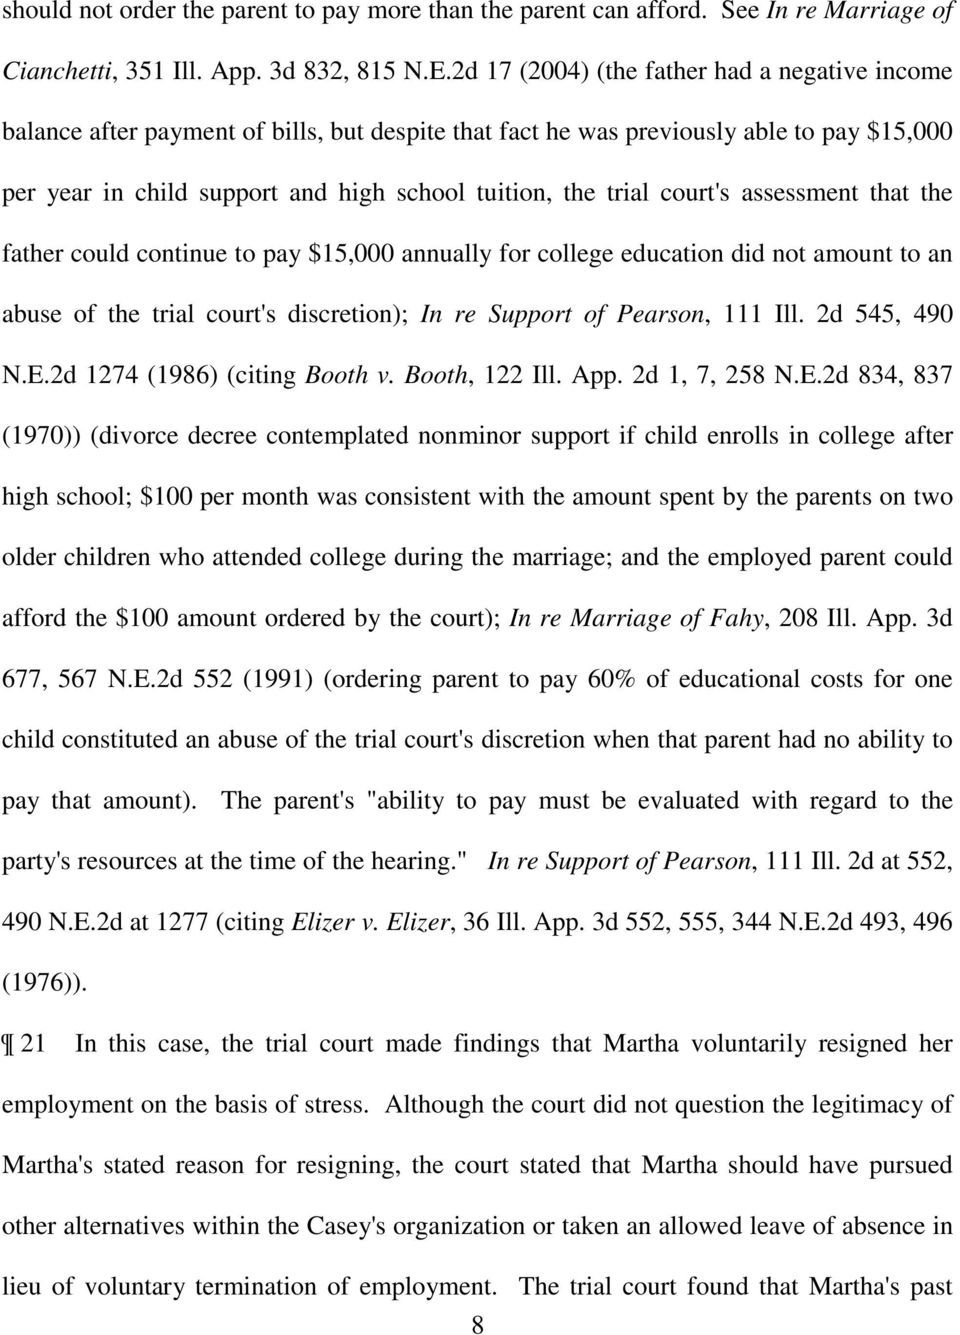 court's assessment that the father could continue to pay $15,000 annually for college education did not amount to an abuse of the trial court's discretion); In re Support of Pearson, 111 Ill.